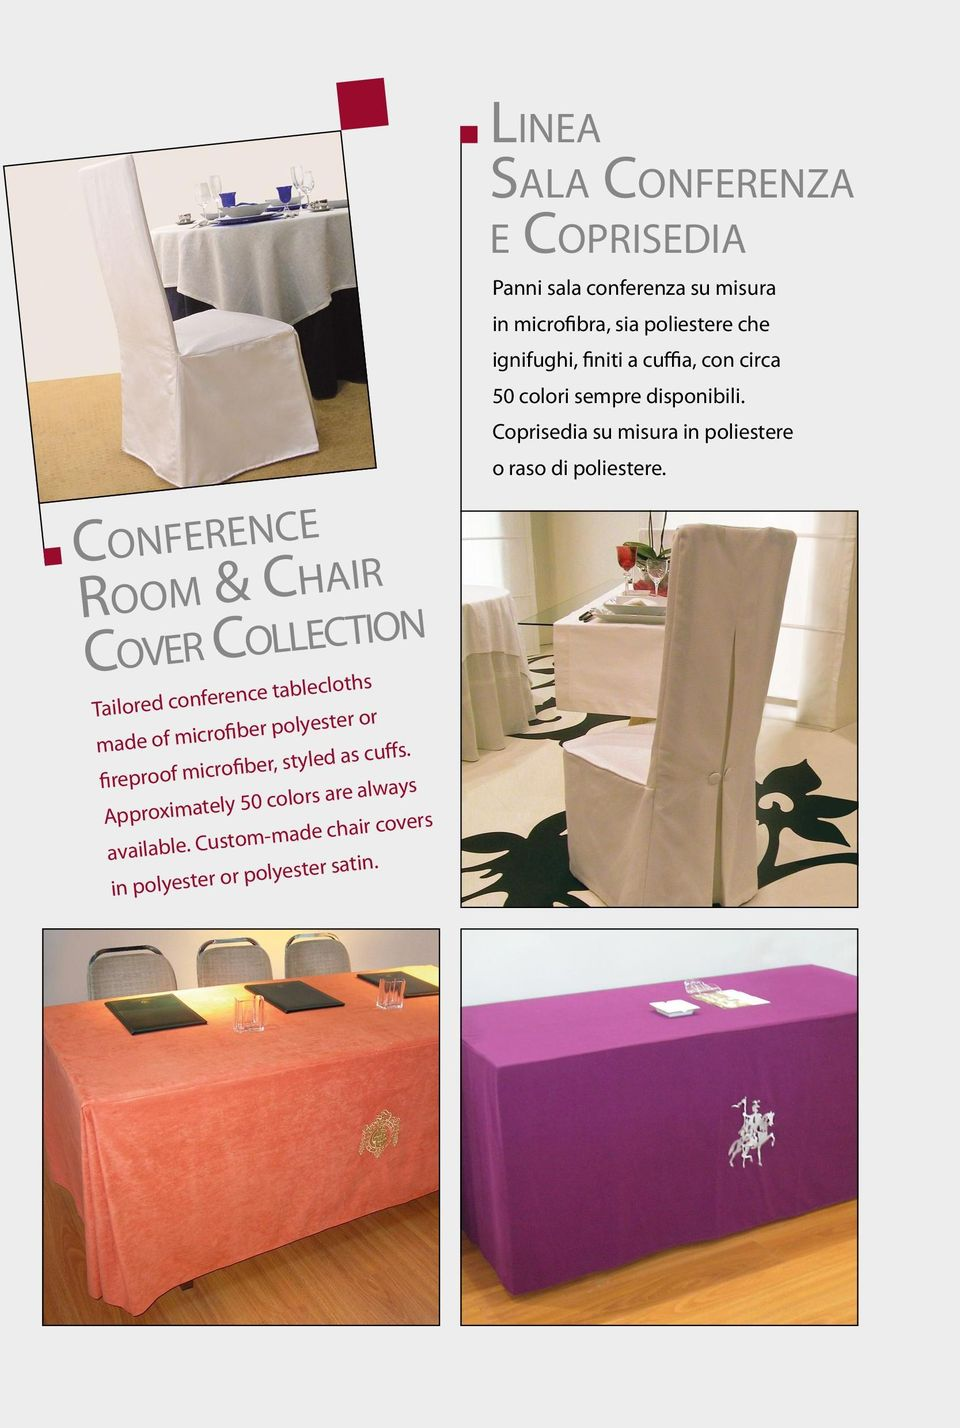 Custom-made chair covers in polyester or polyester satin.